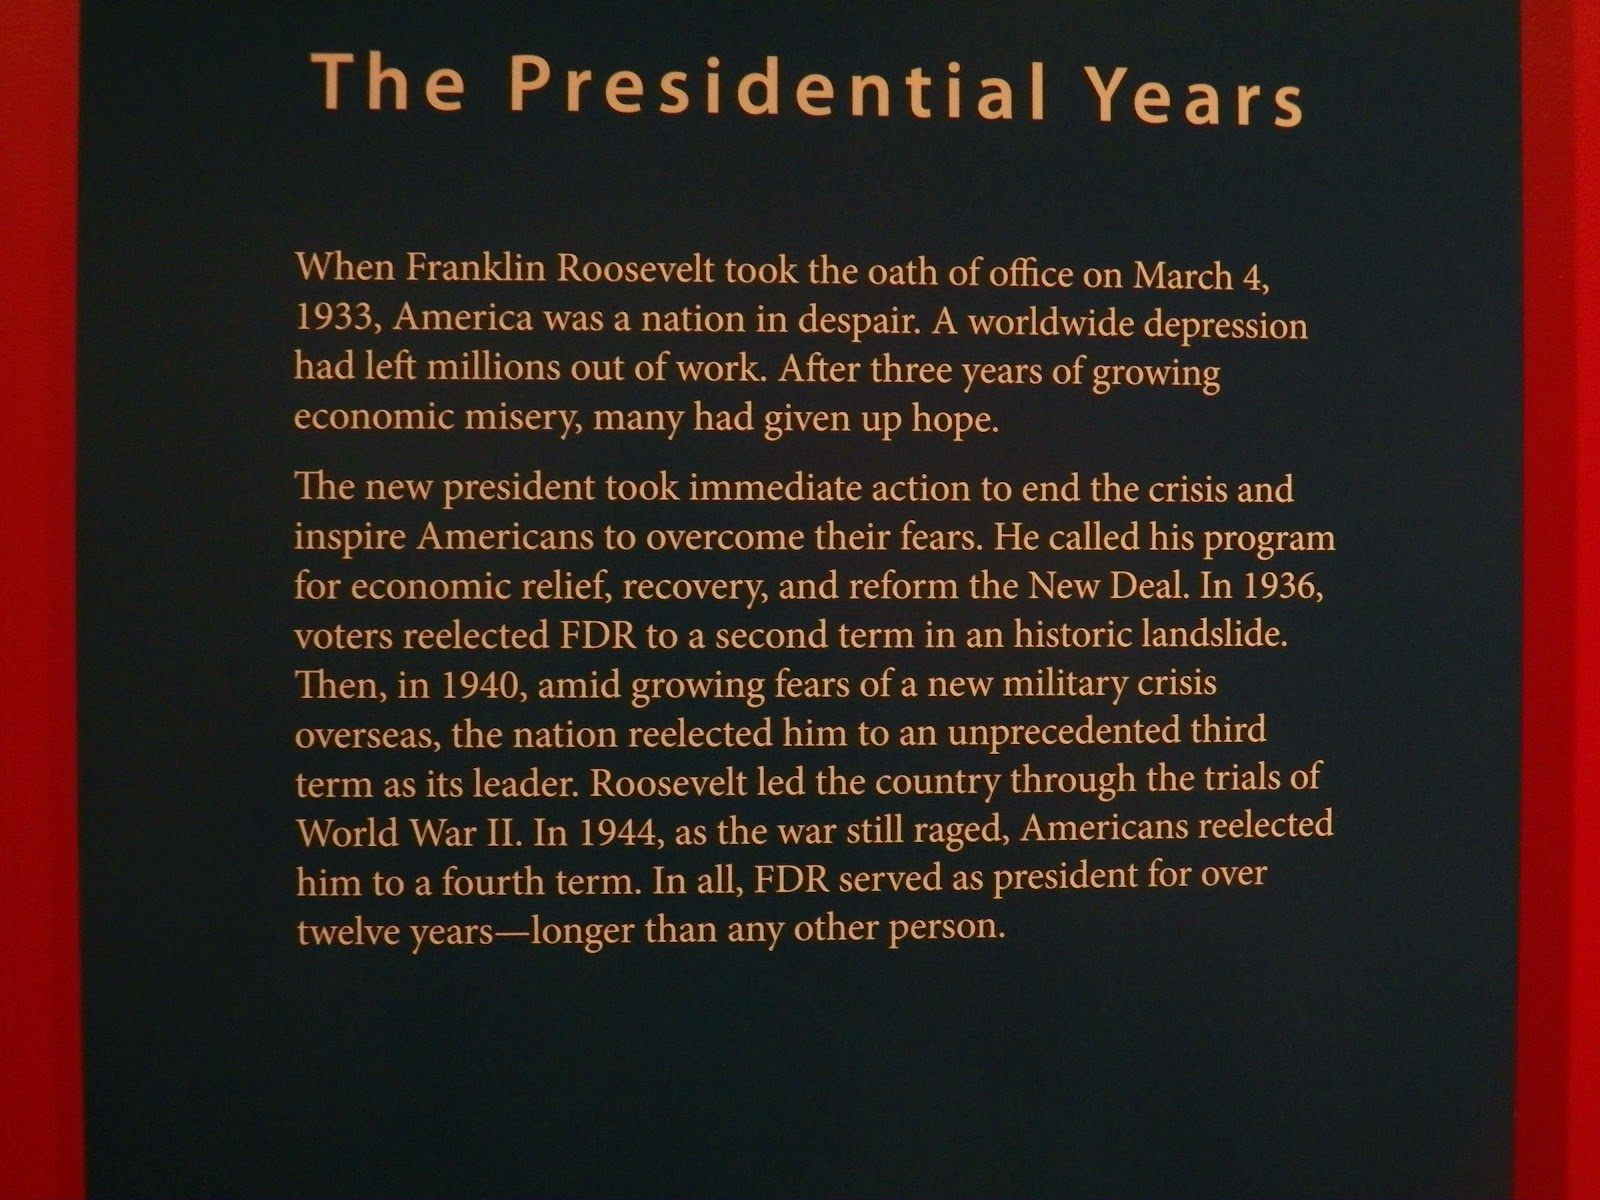 relief recovery and reform brought by franklin roosevelts new deal